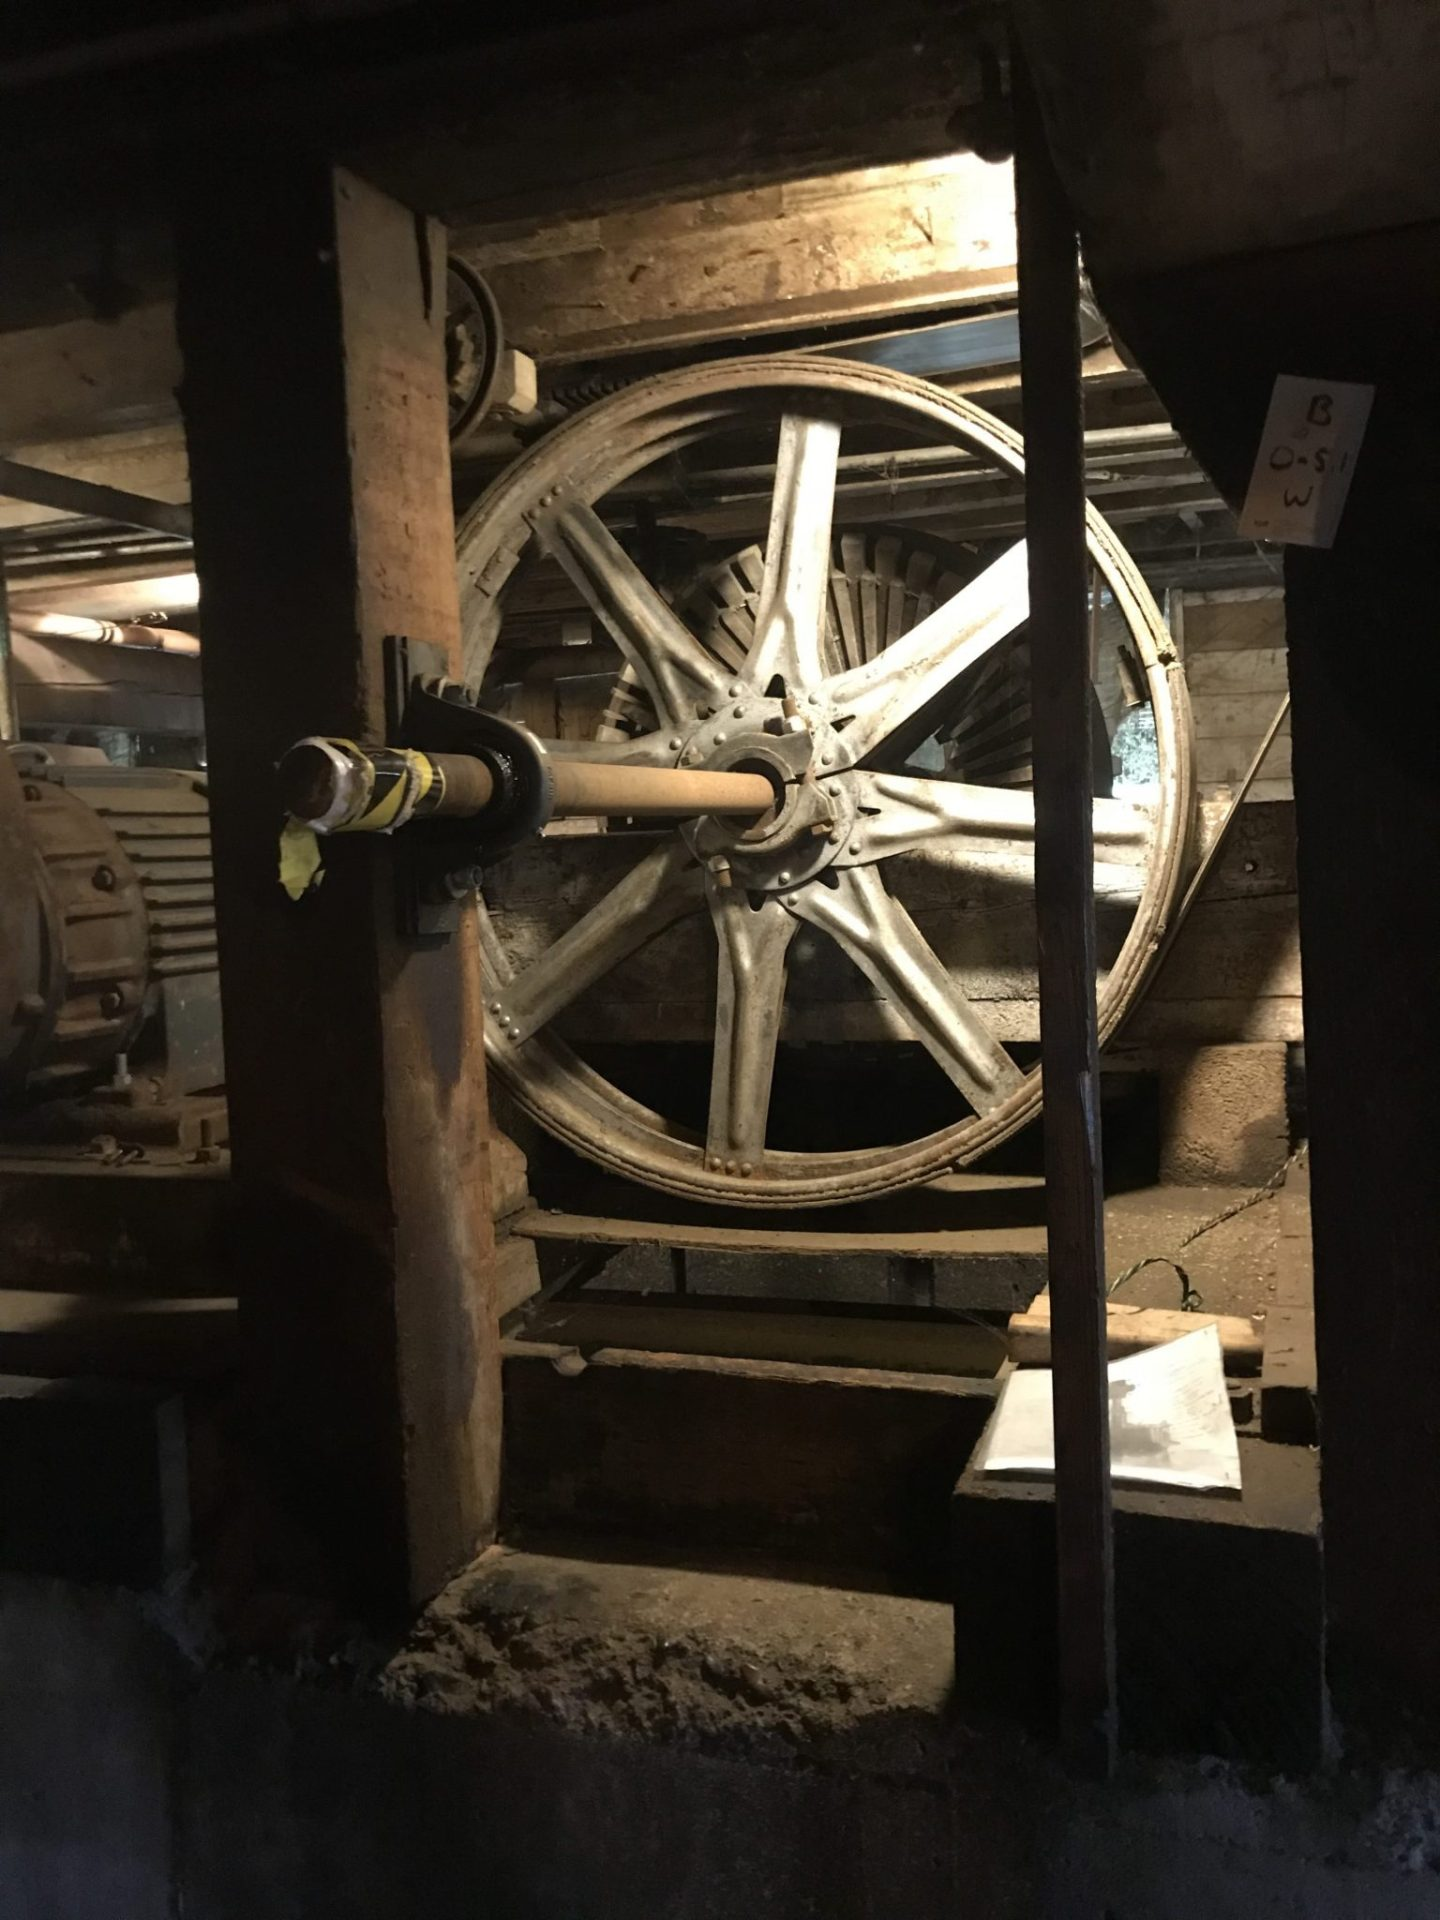 The water wheel that runs the turbine